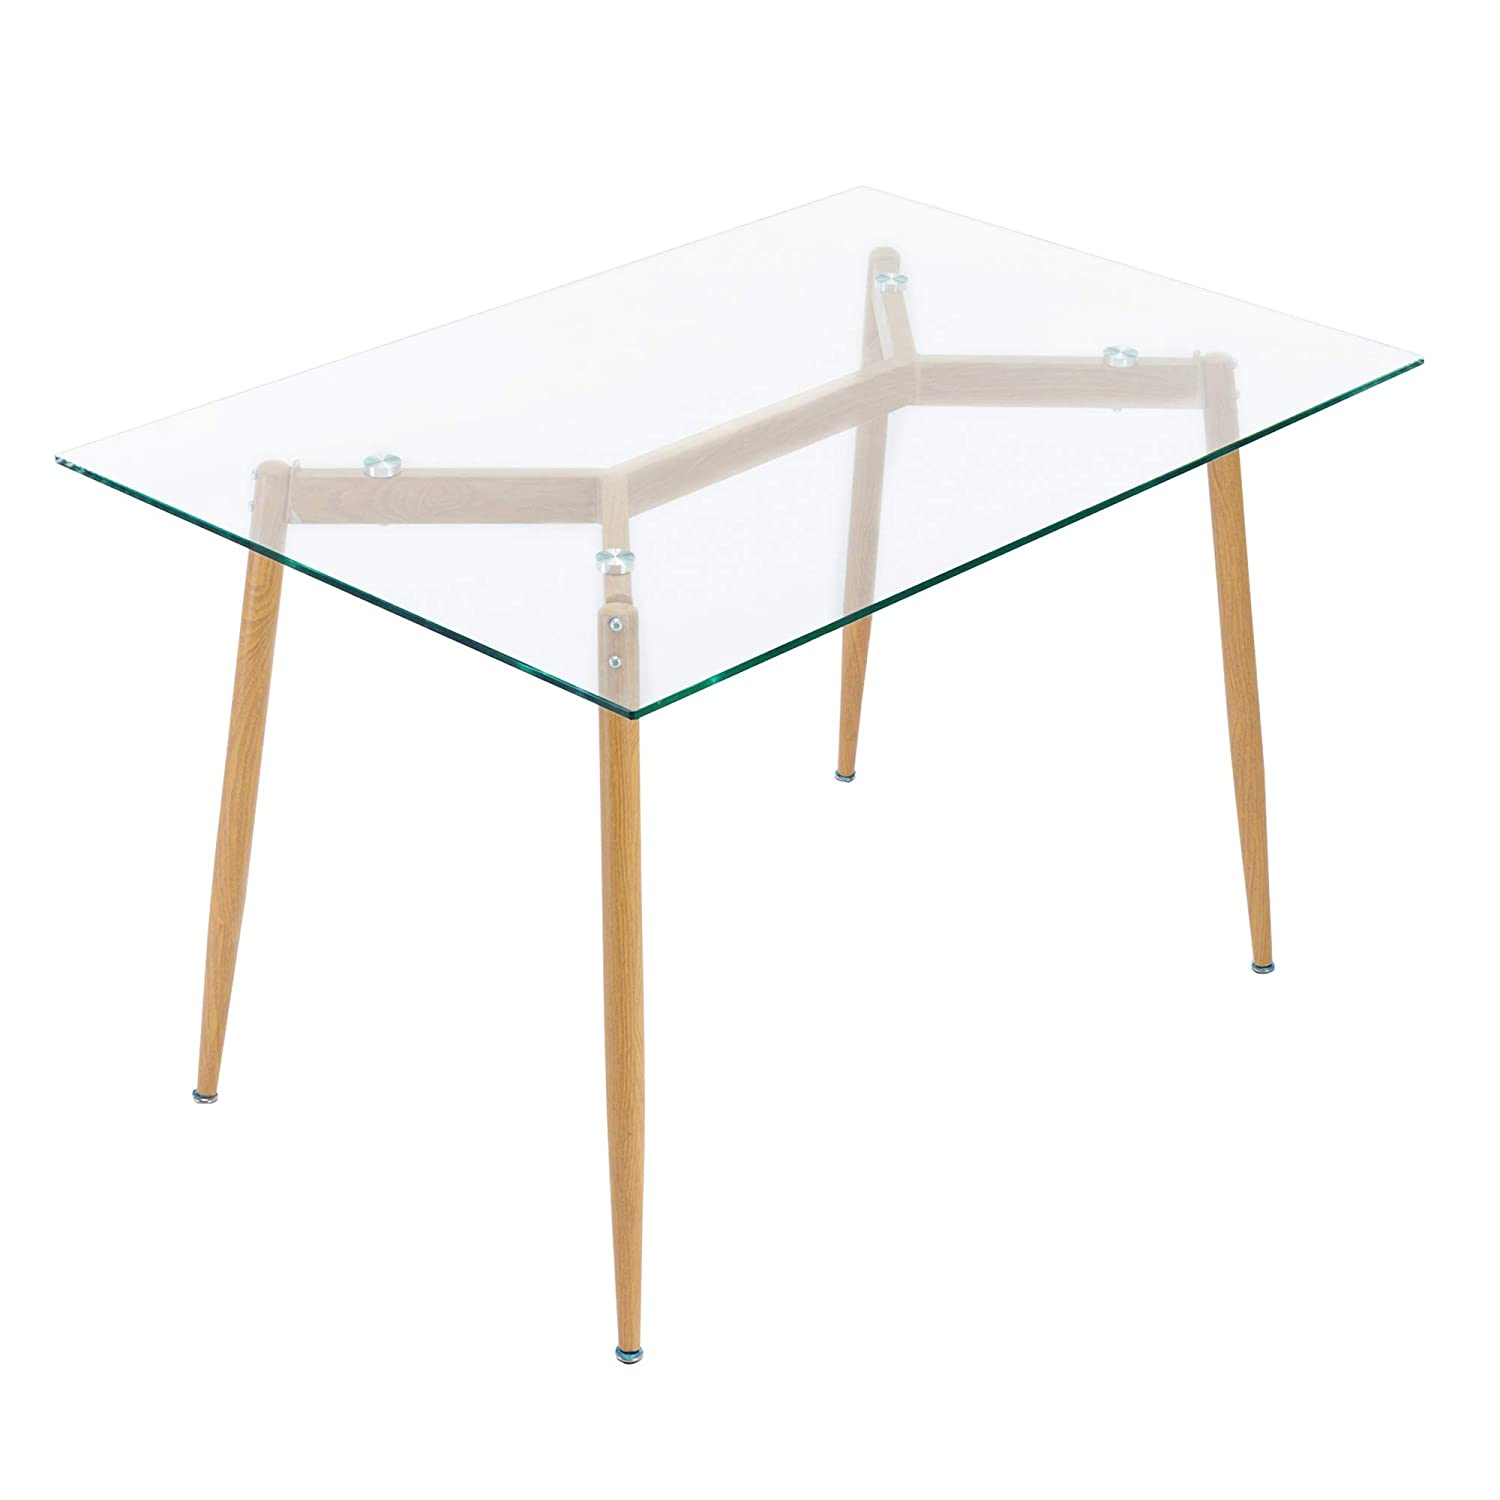 Ivinta Kitchen Modern Glass Rectangular Dining Table 48 x 32 for 4 6 with Foot pad for Dining Room Mid-Century Leisure Office Table Wooden Skin